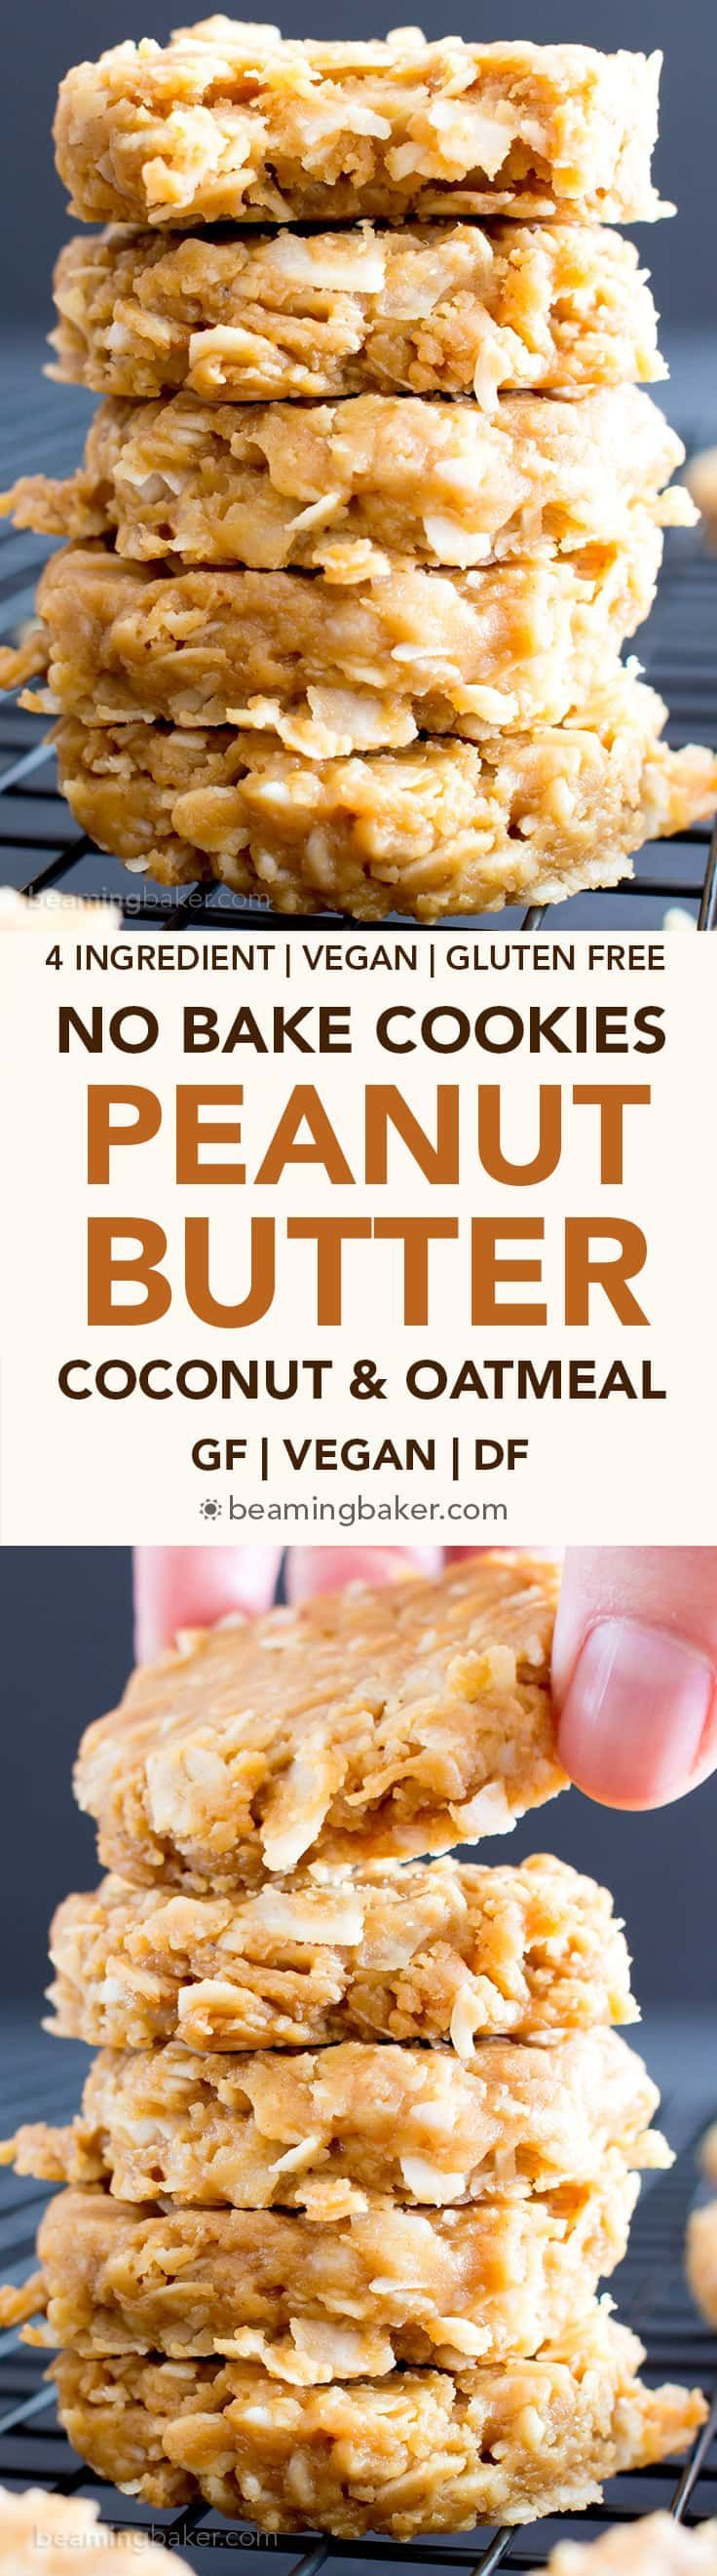 4 Ingredient No Bake Peanut Butter Coconut Oatmeal Cookies (V, GF): a one-bowl recipe for super easy to make peanut butter cookies packed with coconut and oats! #GlutenFree #Vegan #WholeGrain #RefinedSugarFree | BeamingBaker.com